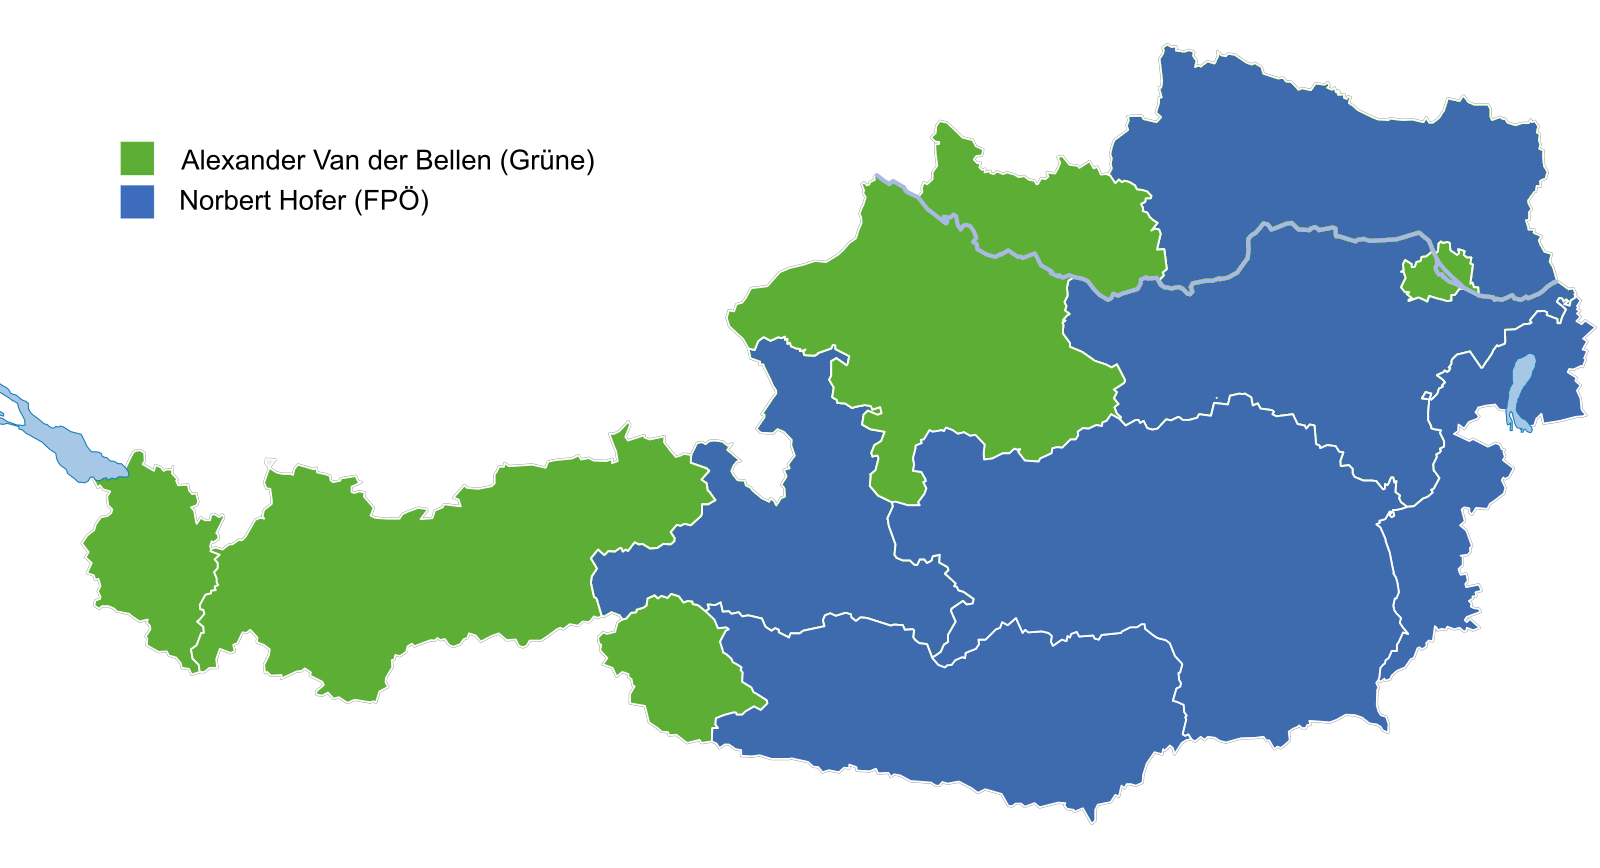 Results by state of initial (annulled) second round from the 2016 Austrian presidential election.  Furfur | Courtesy of the author